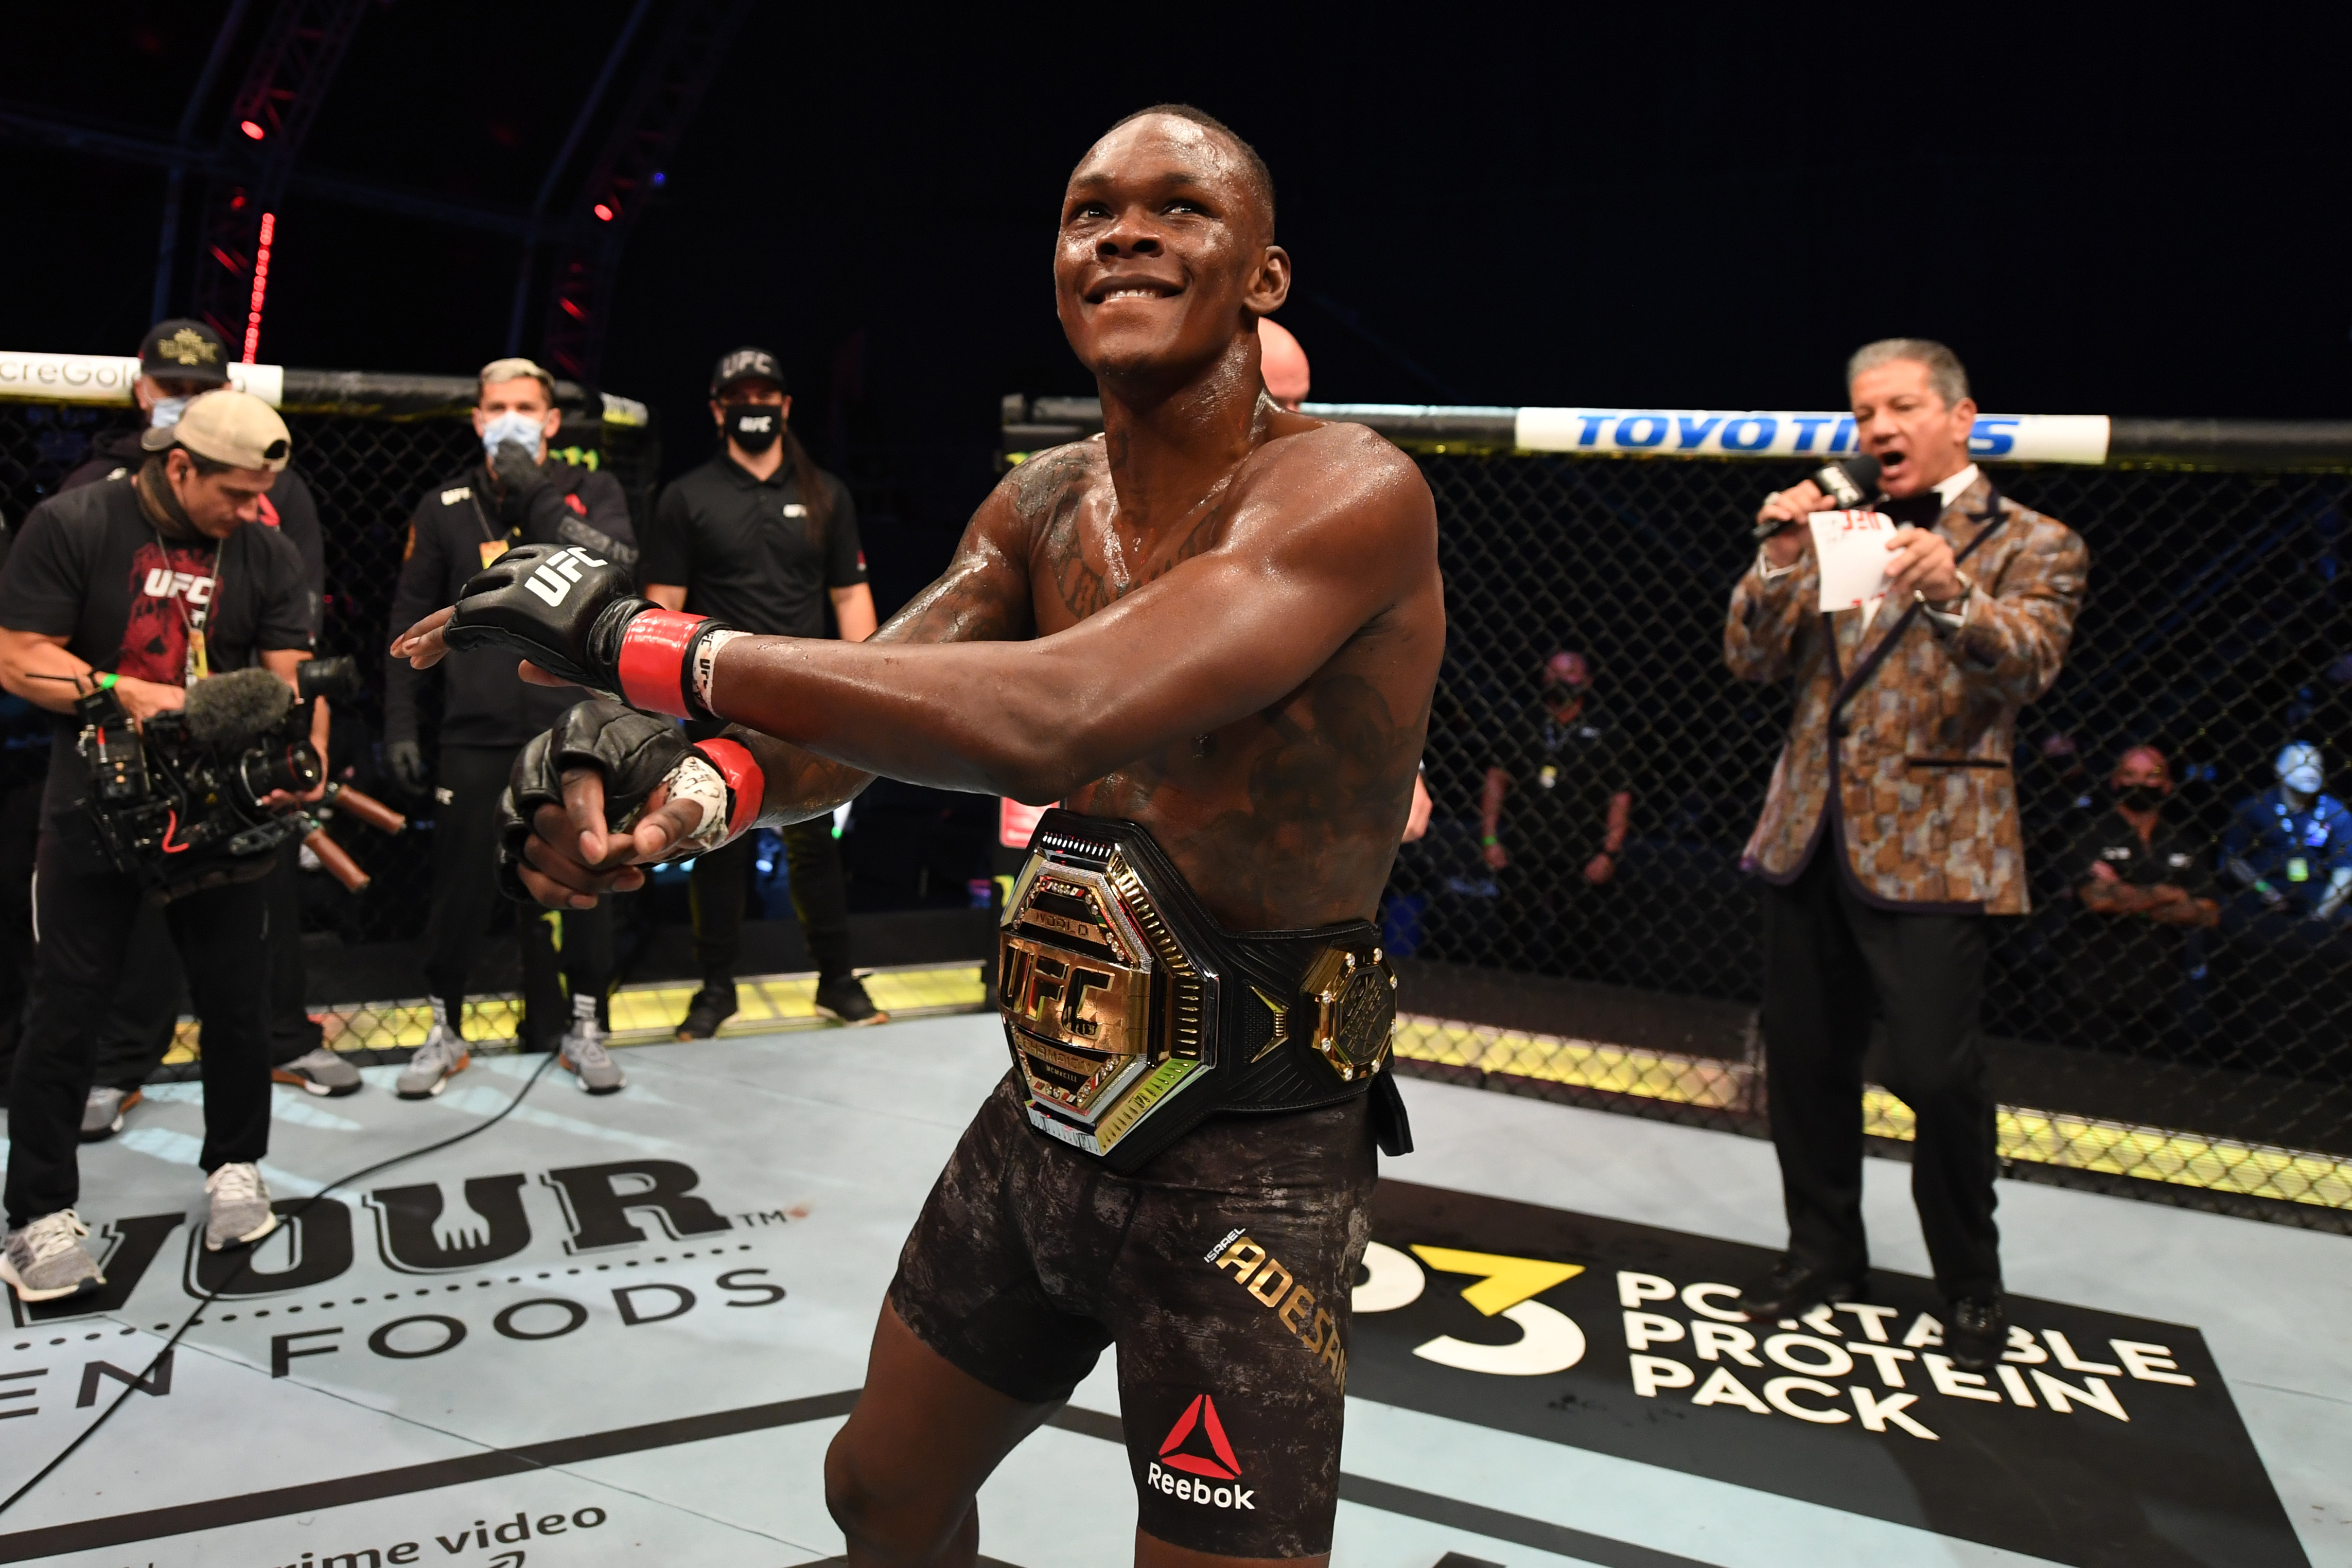 Israel Adesanya celebrates after defeating Paulo Costa of Brazil in their middleweight championship bout